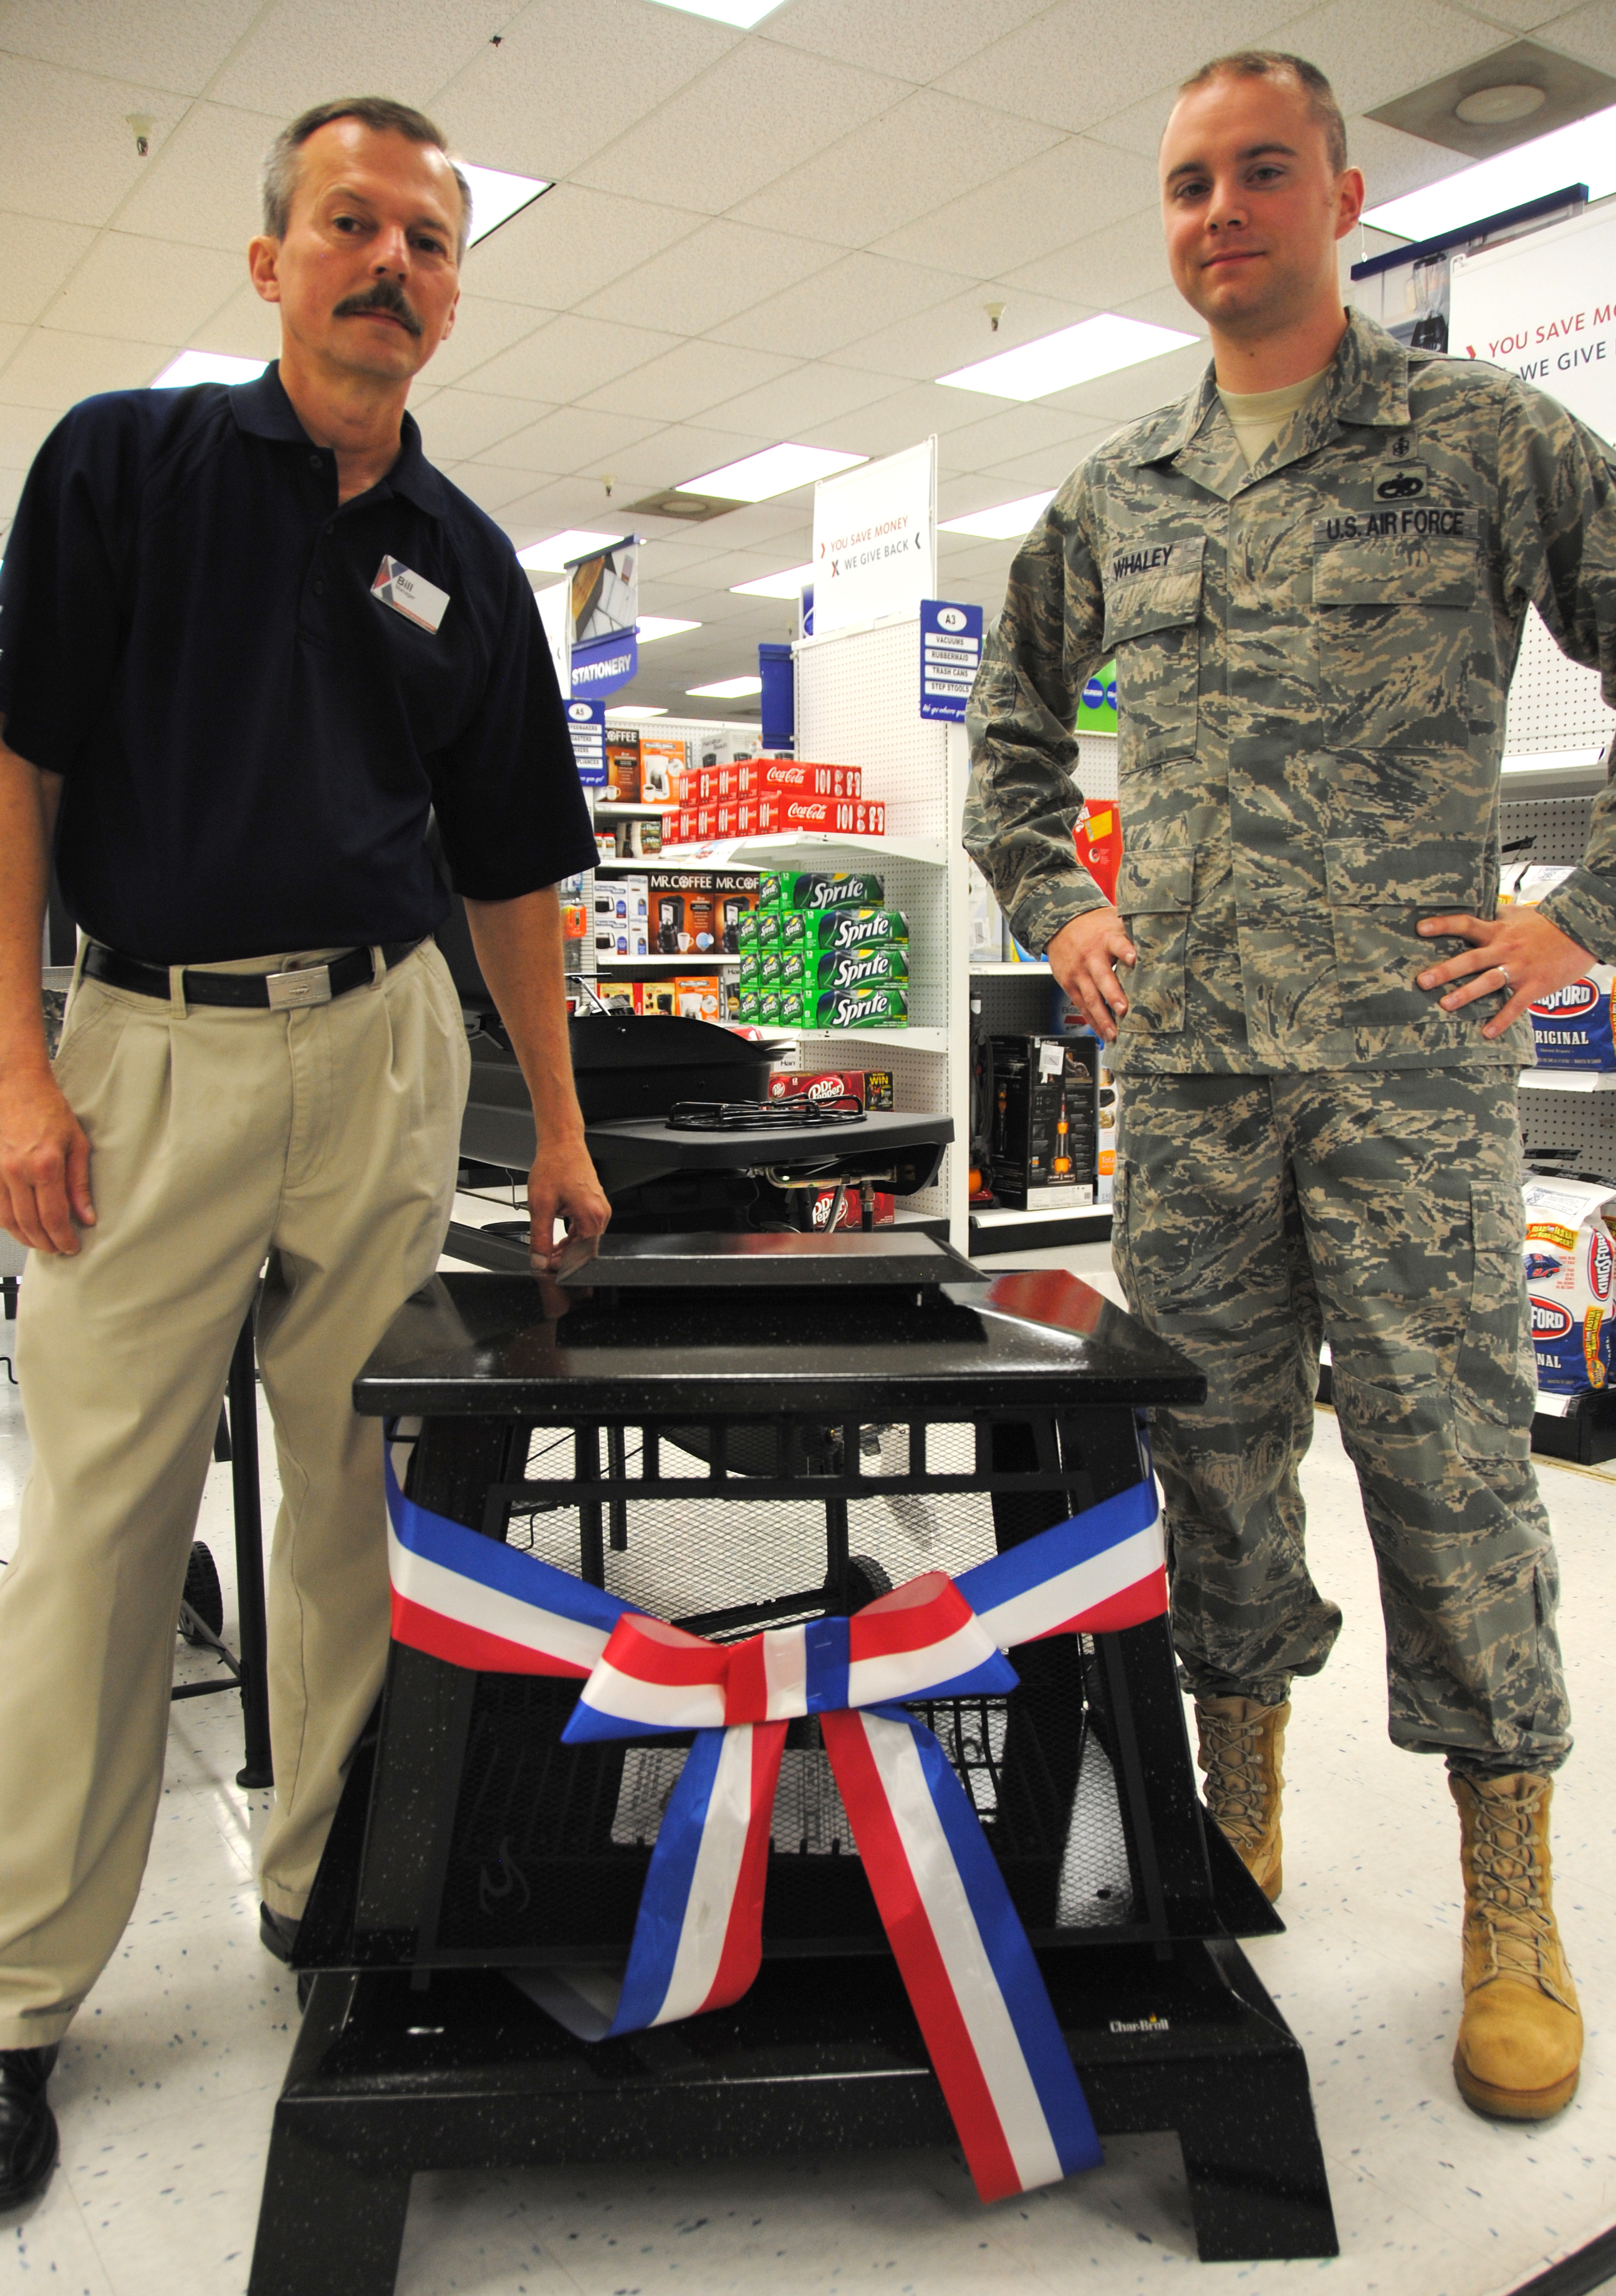 Whaley Wins Outdoor Fireplace In Bx Contest U003e Vance Air Force Base